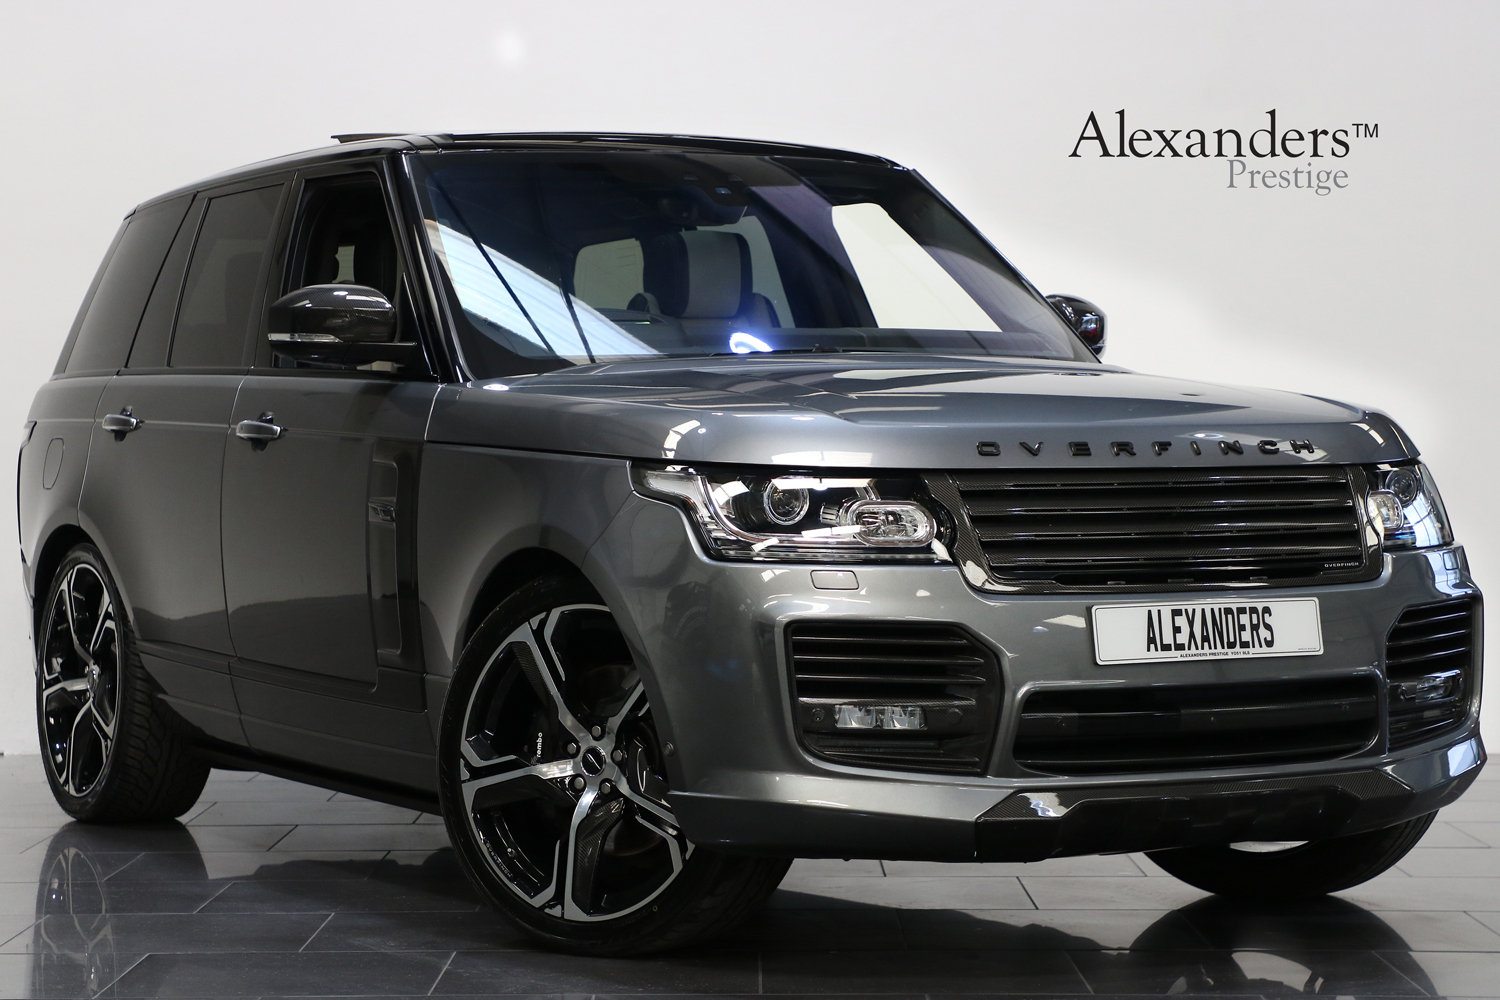 2017 67 RANGE ROVER 4.4 SDV8 AUTOBIOGRAPHY OVERFINCH AUTO  For Sale (picture 1 of 6)